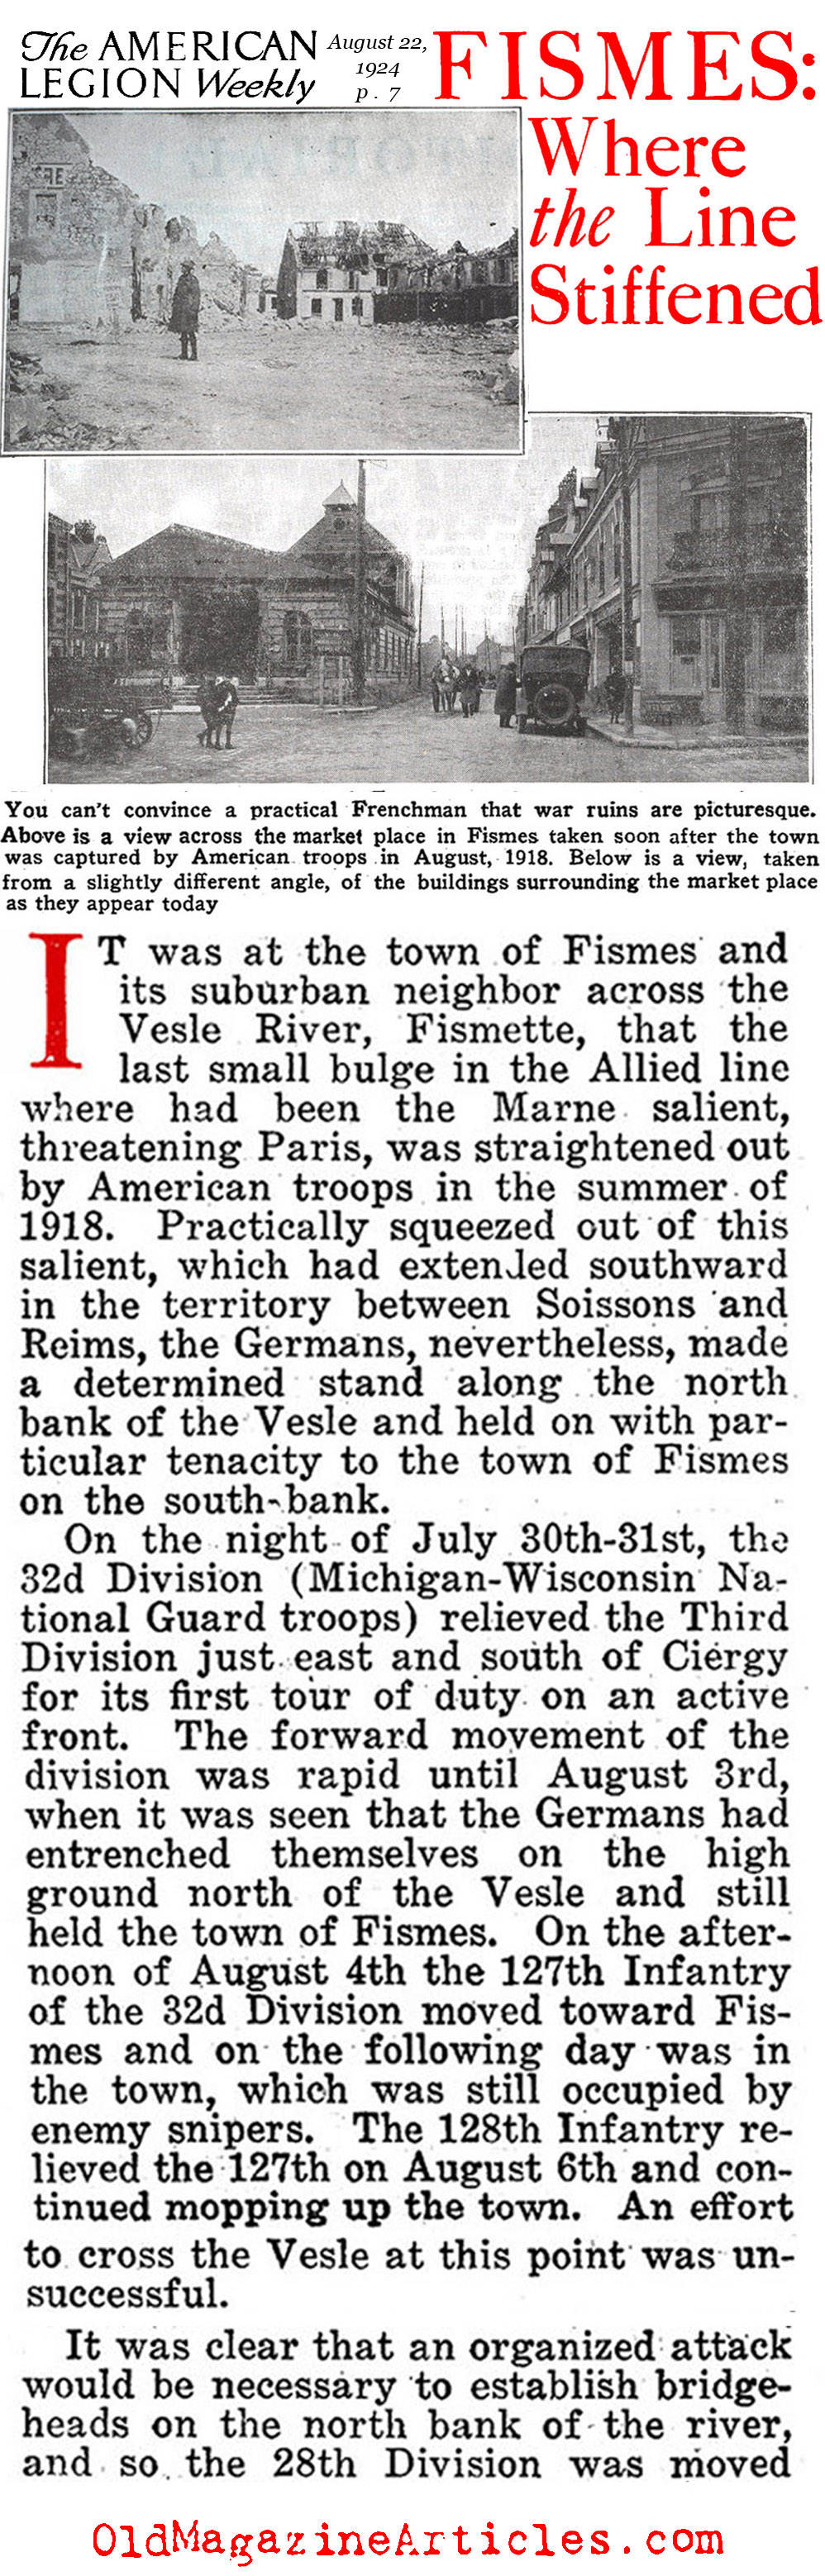 WW1 AMERICAN ARMY AT FISMETTE ...